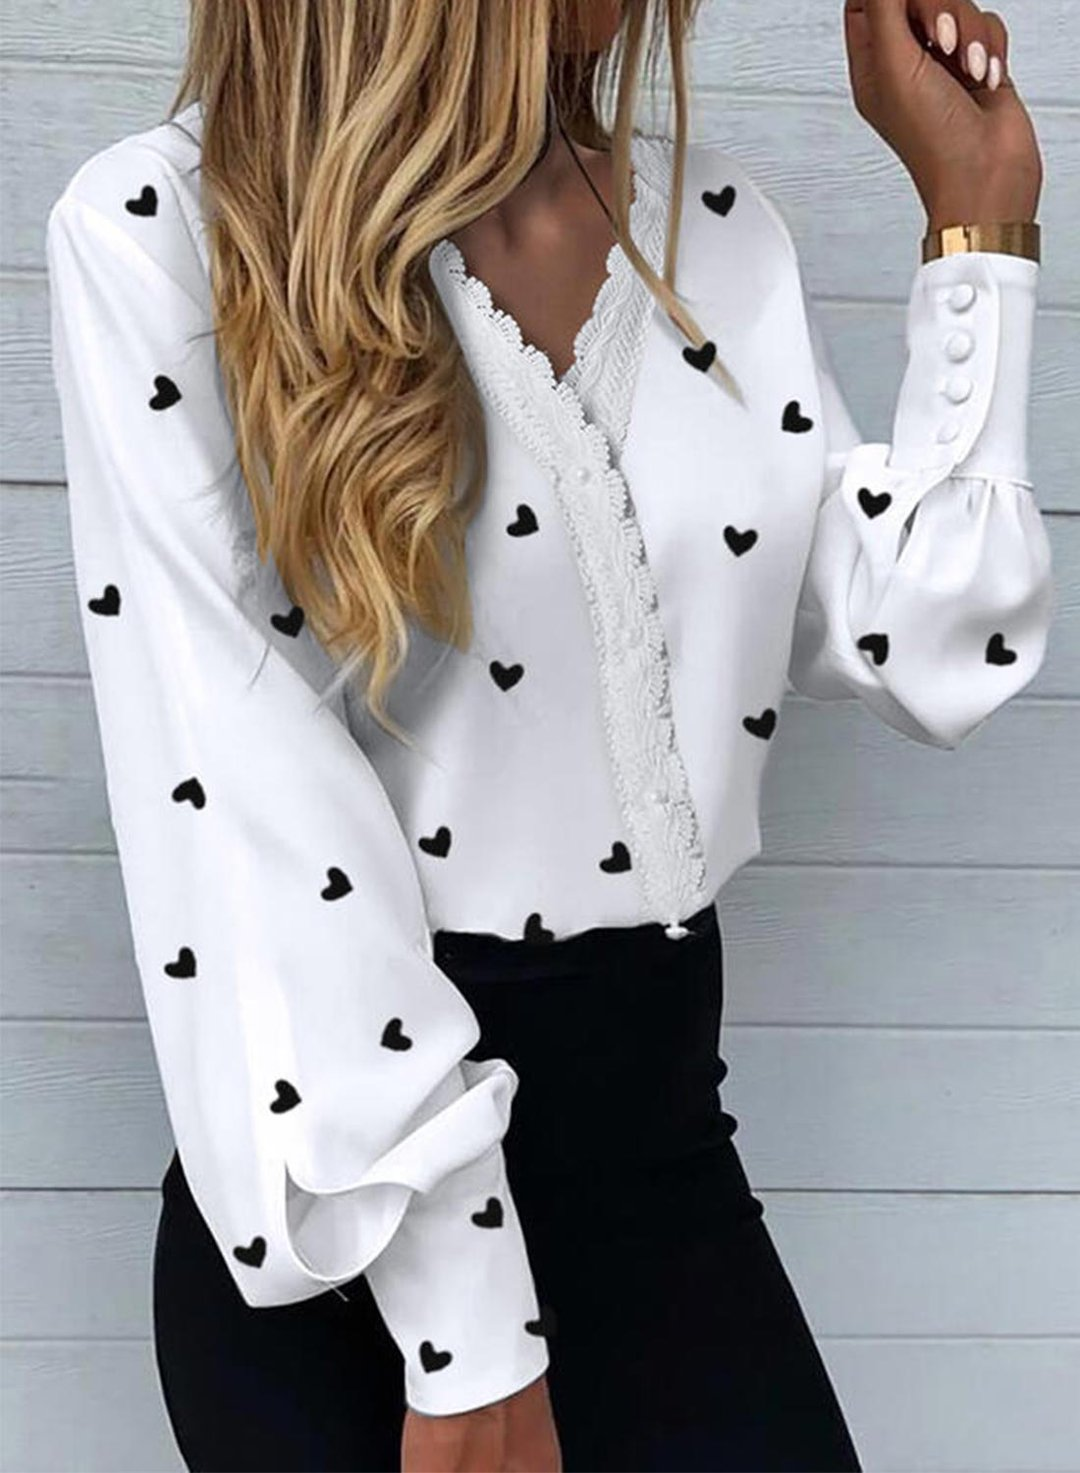 White Women's Shirts Lace Heart-shaped Long Sleeve V Neck Daily Casual Shirt LC255957-1